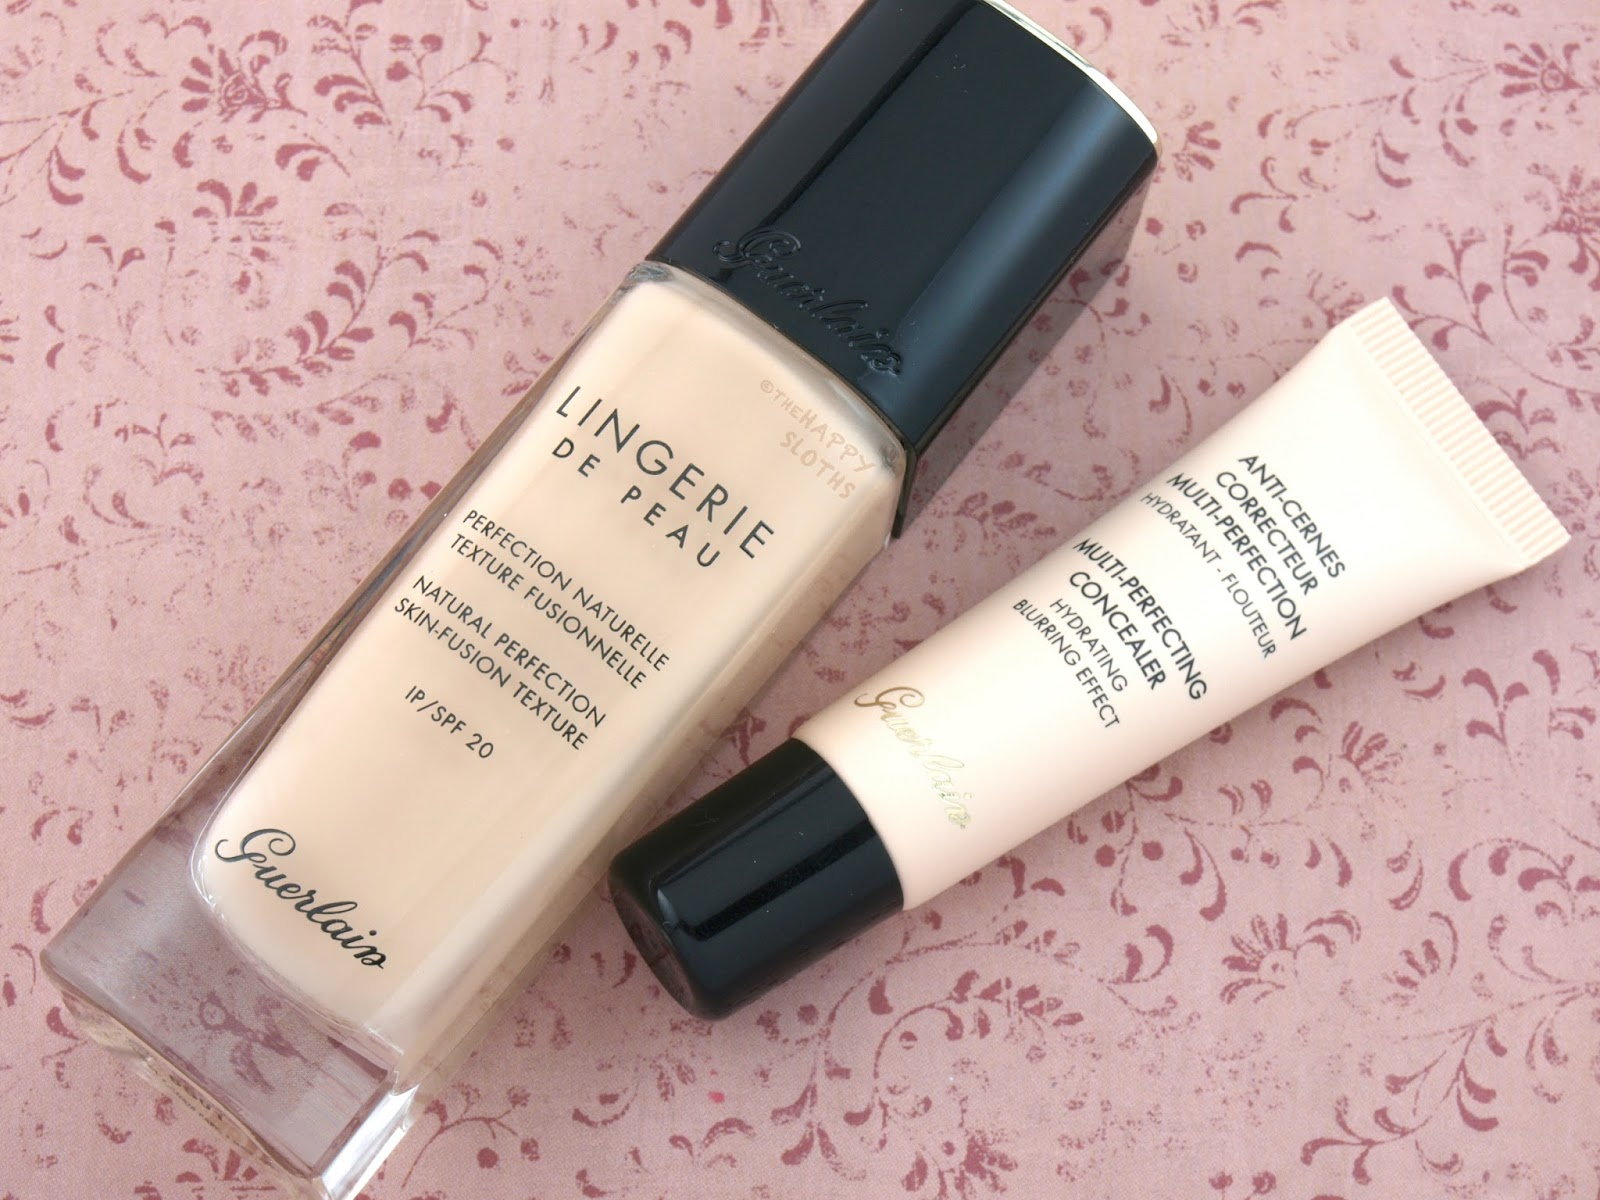 Guerlain Lingerie de Peau Foundation & Multi-Perfecting Concealer: Review and Swatches